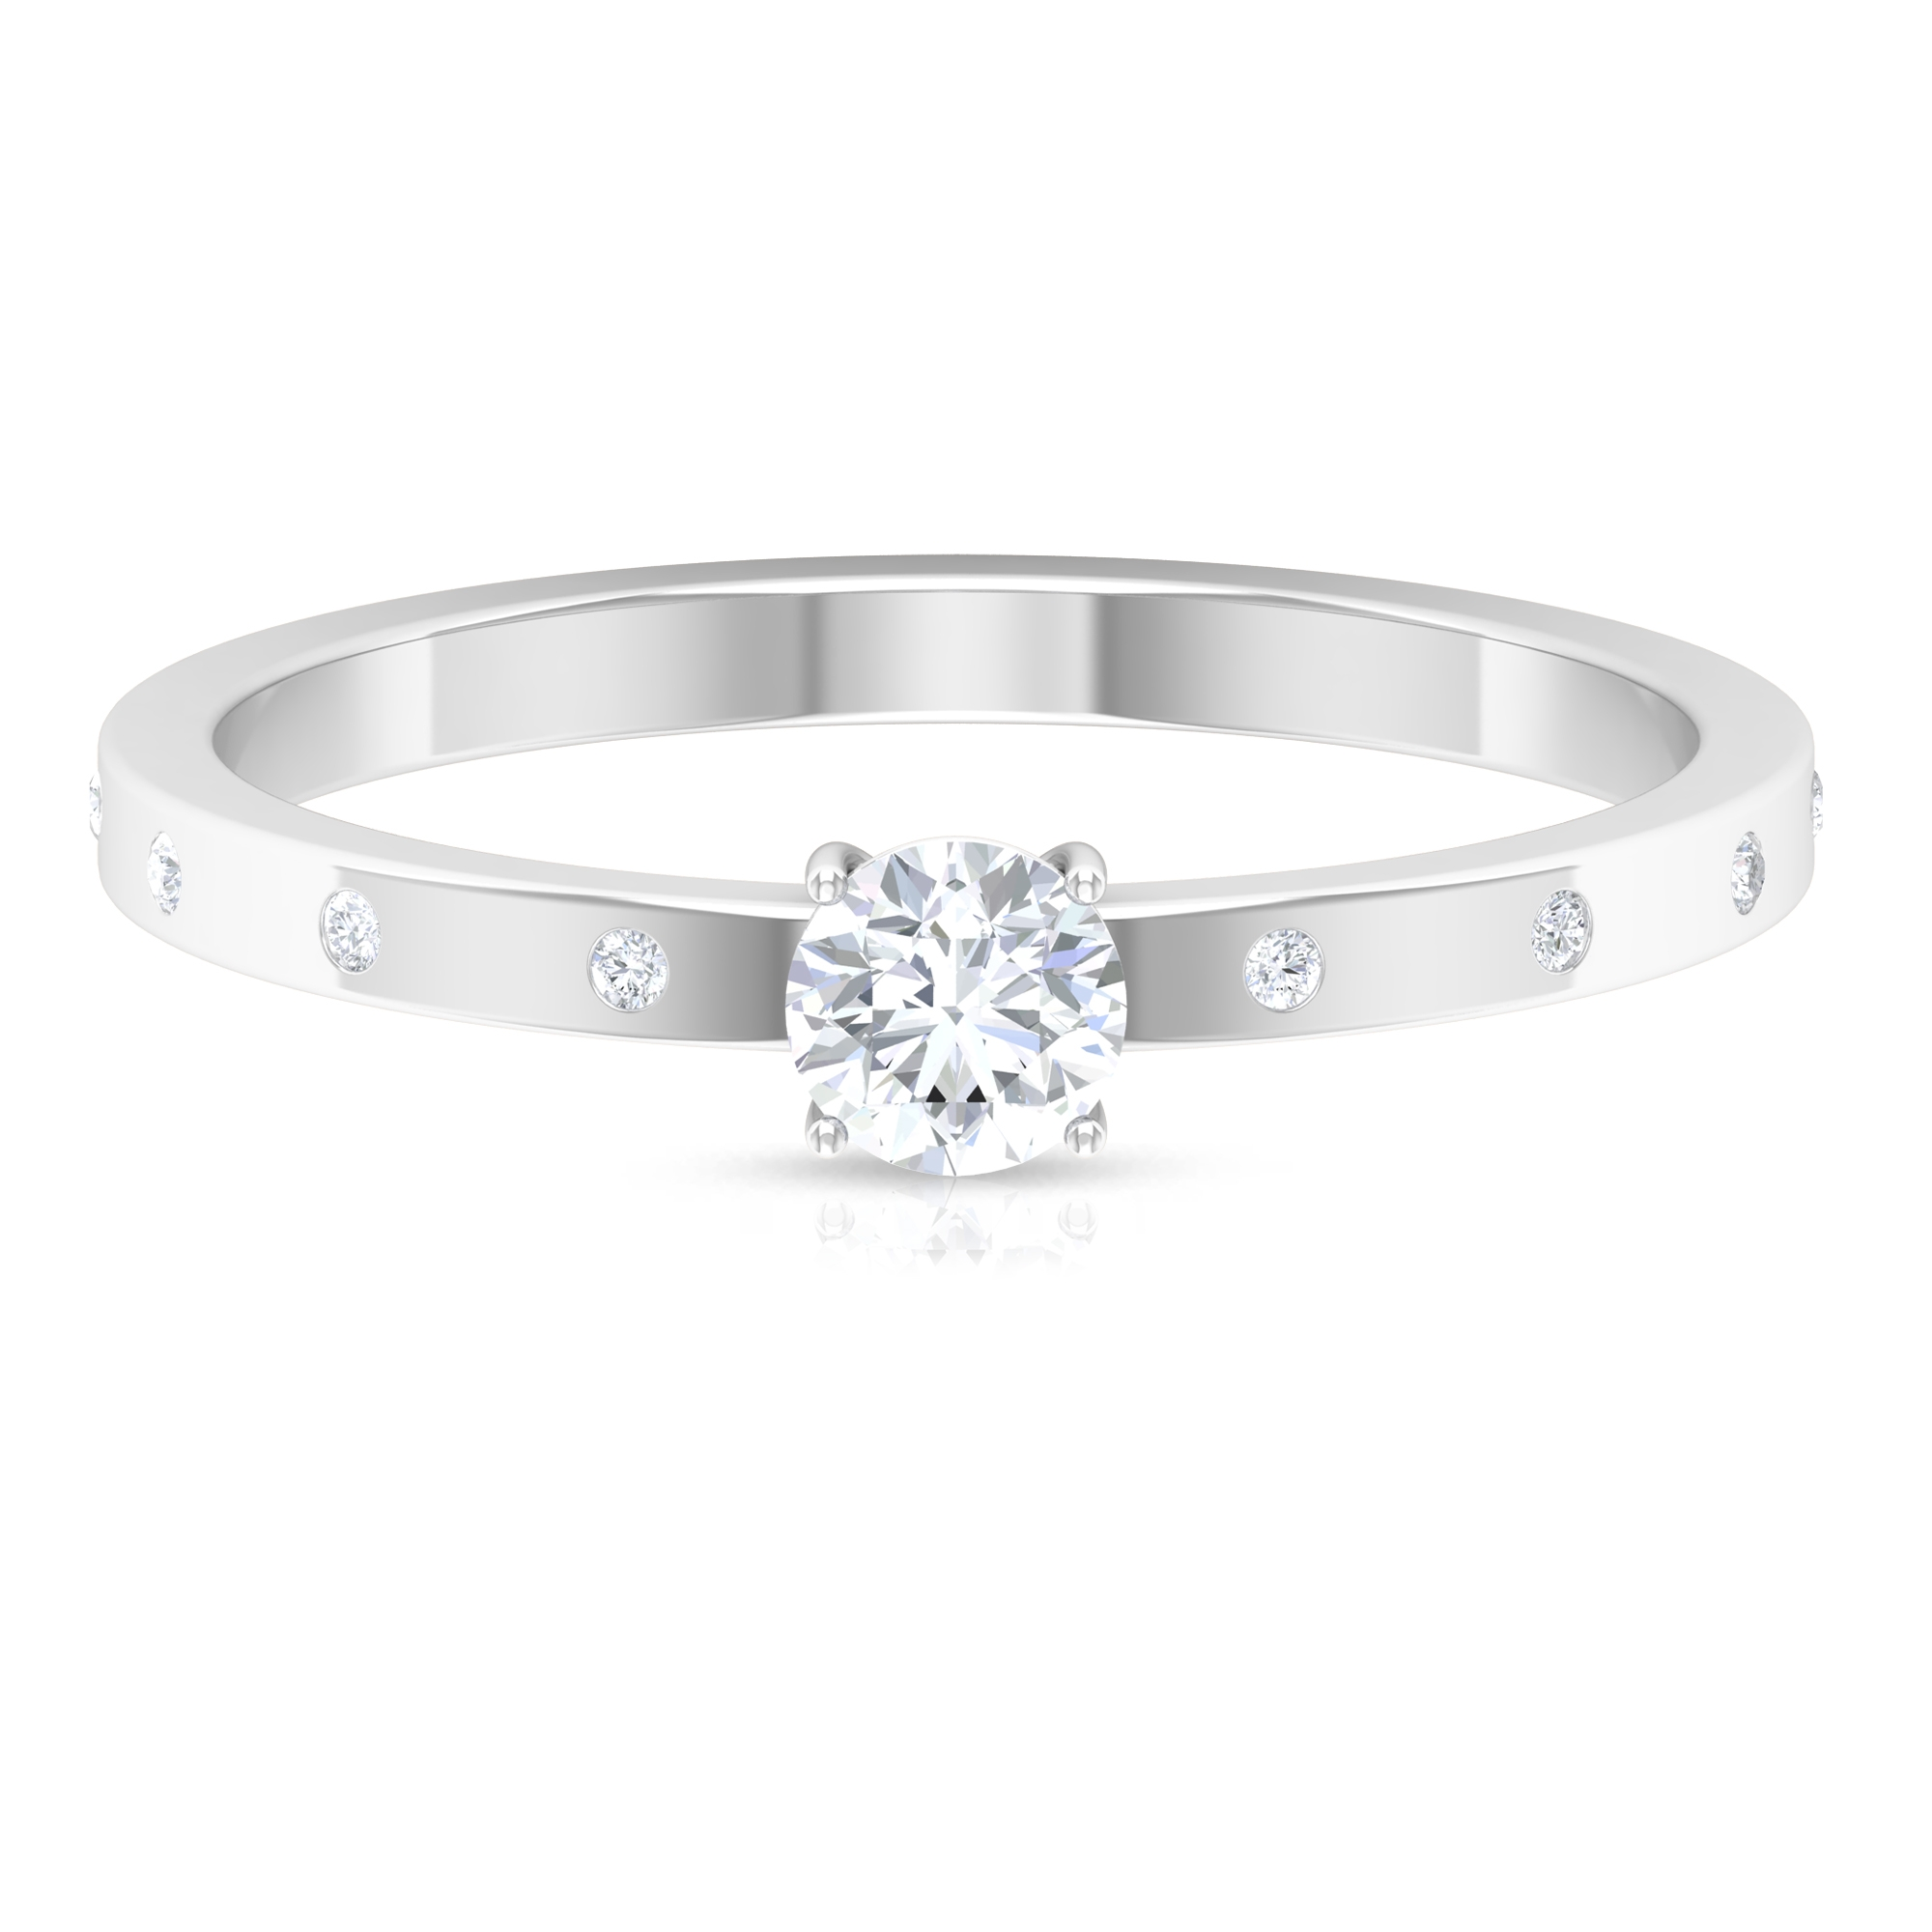 1/4 CT Round Cut Diamond Solitaire Ring in 4 Prong Setting with Sleek Accent